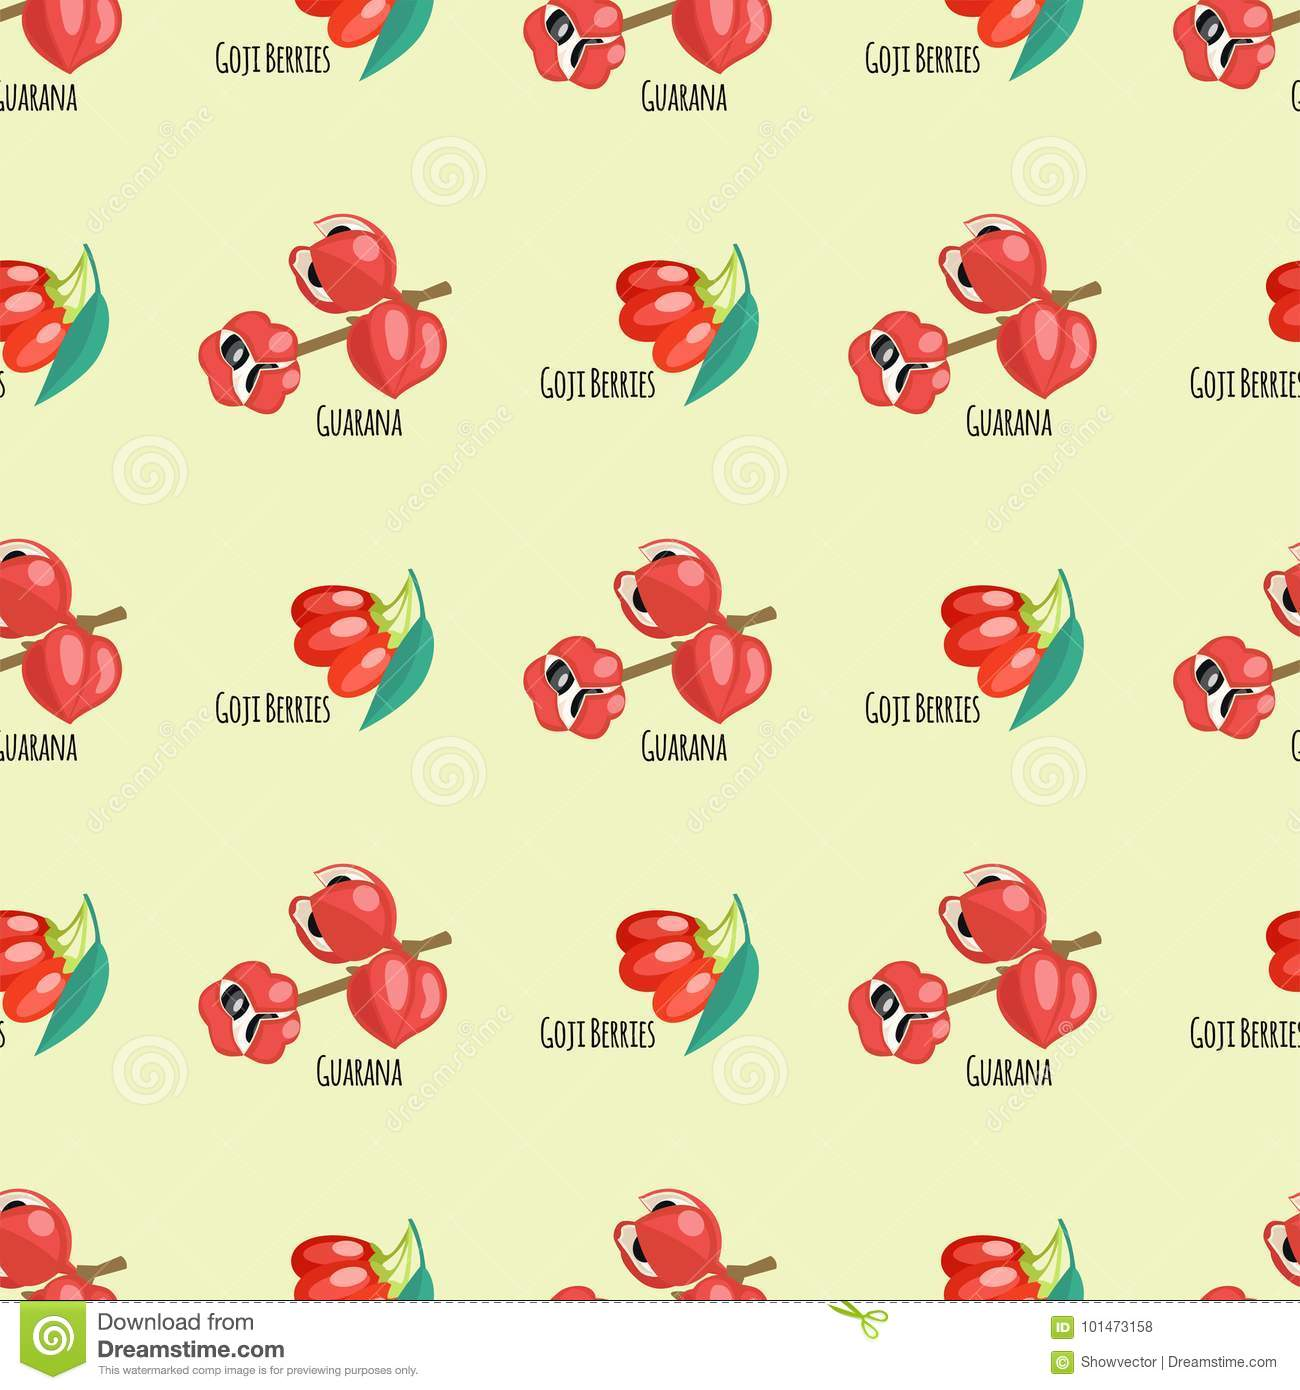 Goji berries guarana seamless pattern background red fruits dietary drawing energy food vector illustration.